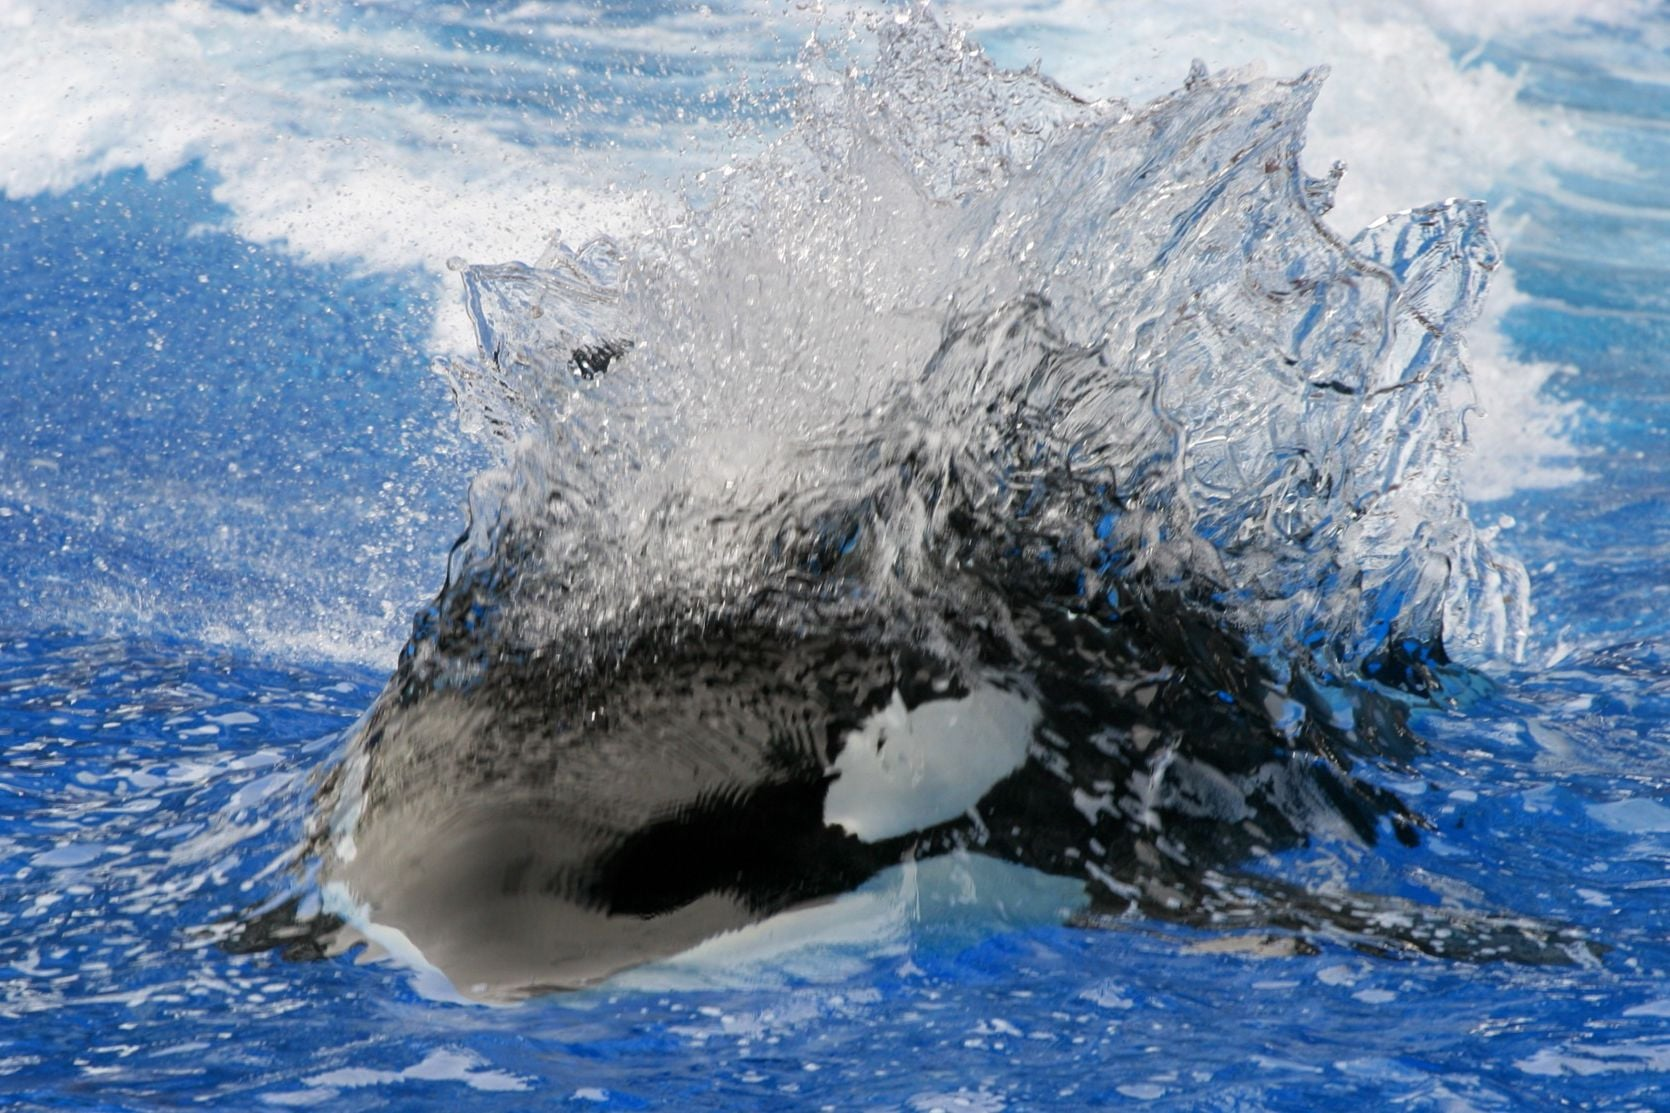 Hd Car Wallpapers 1080p Download Orca Killer Whale Hd Wallpapers Download